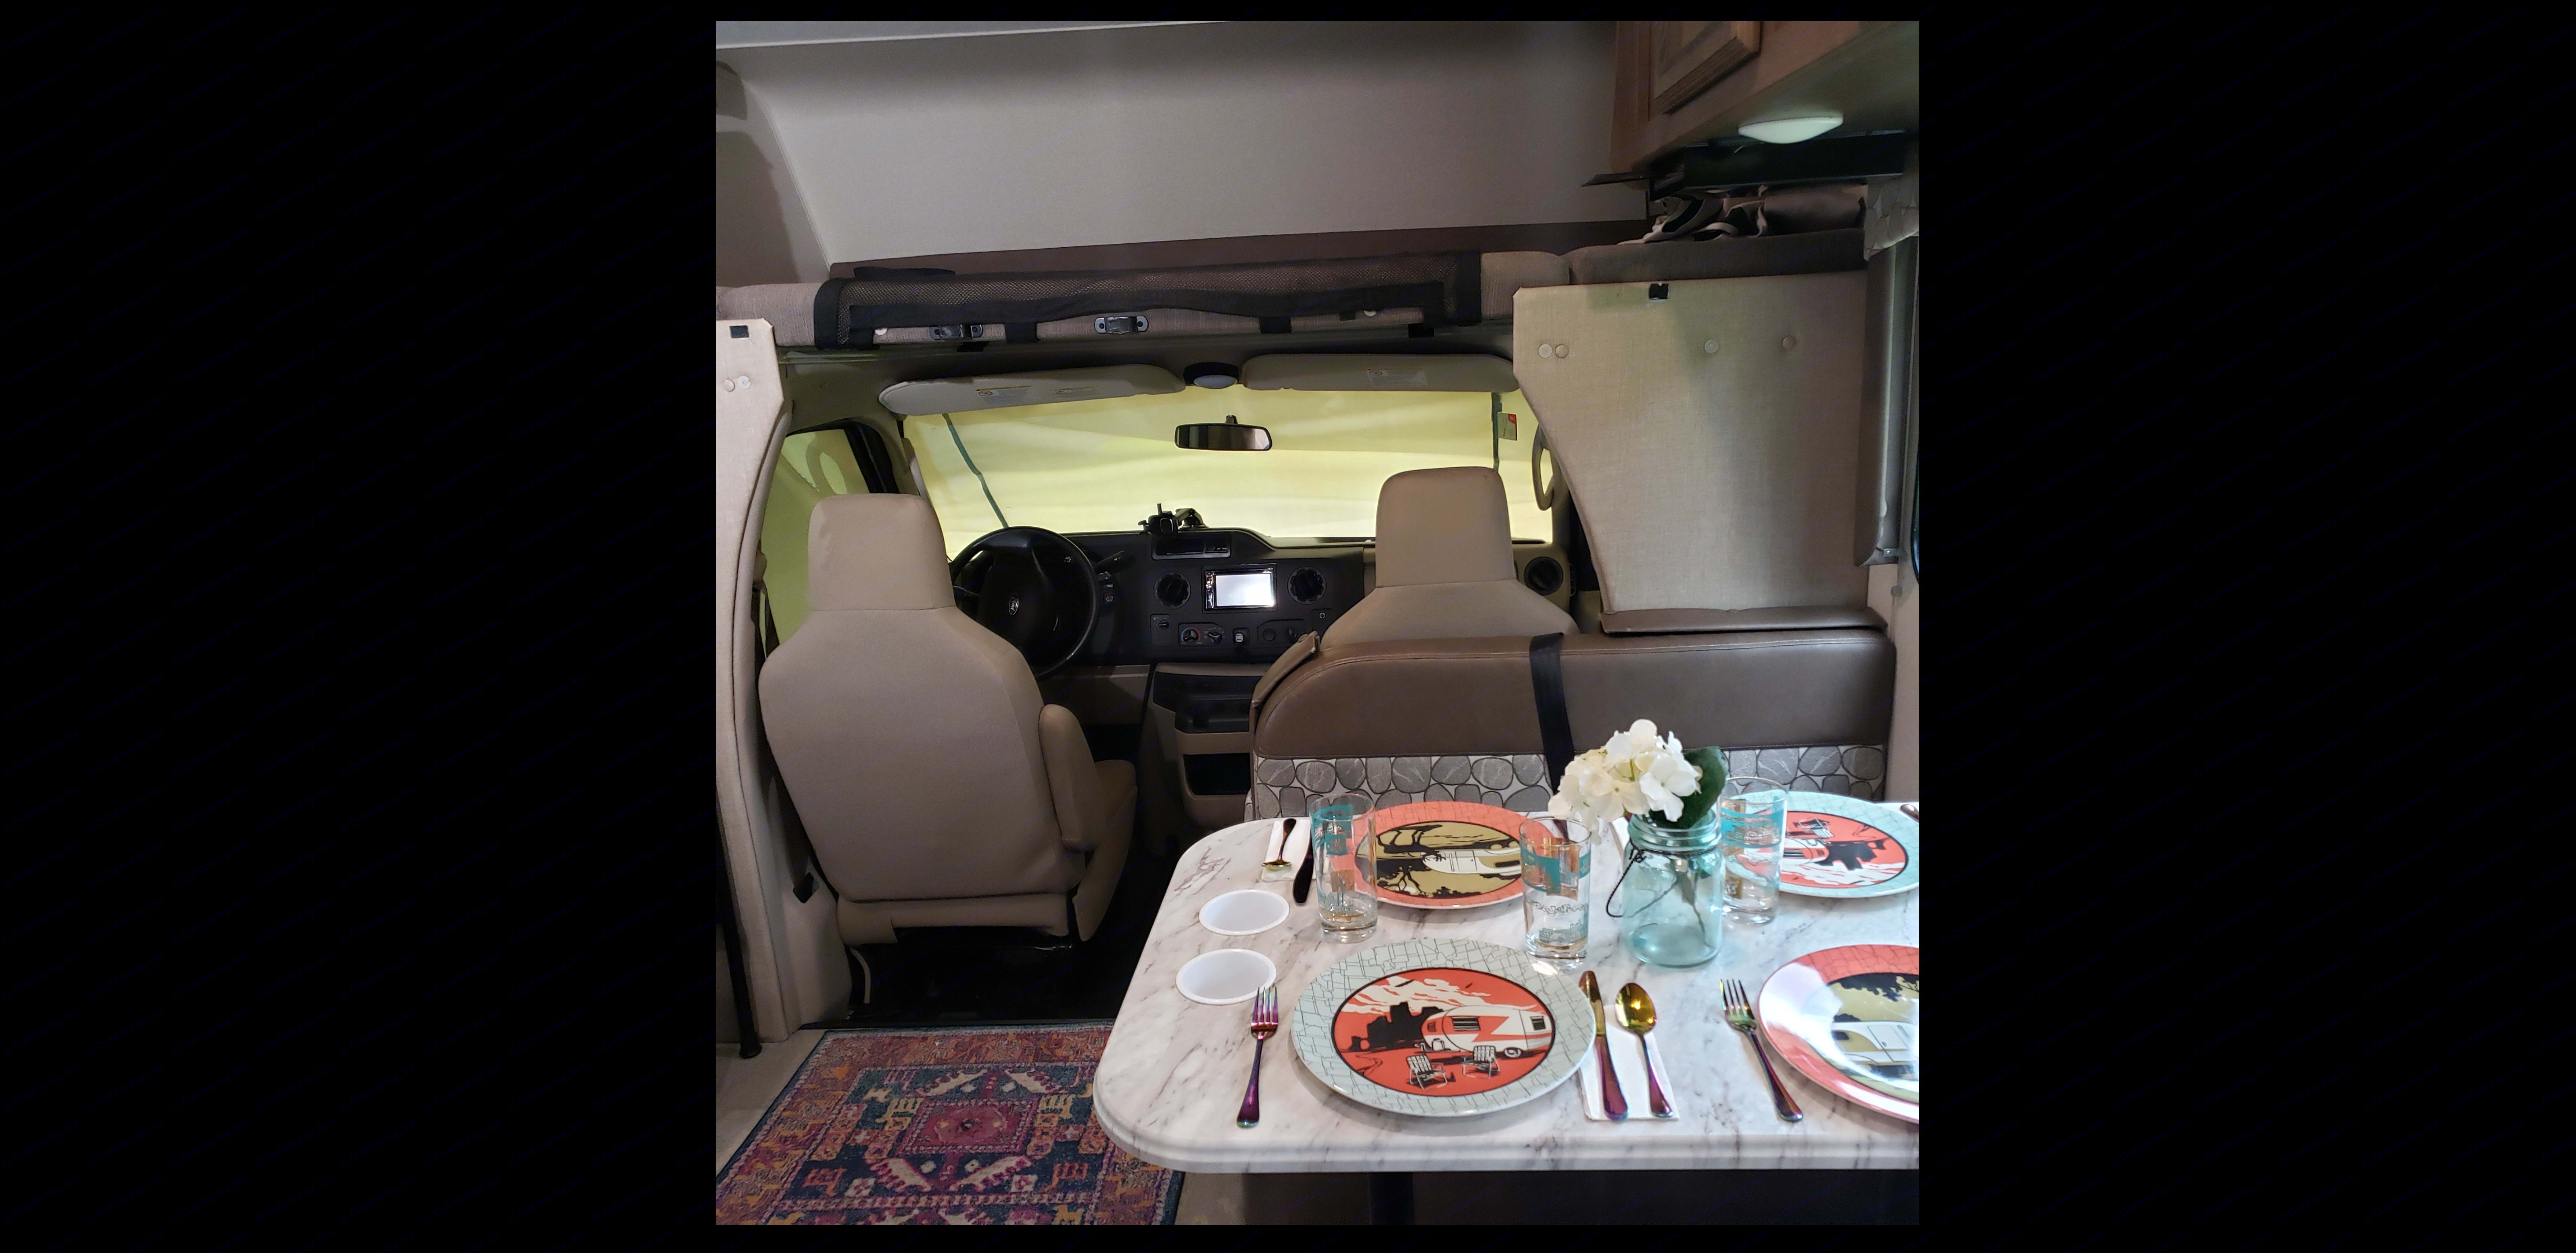 Looking forward to cockpit from entryway. The overhead bunk is 8 foot long and takes king size bedding (included).. Coachmen Freelander BH31 2019